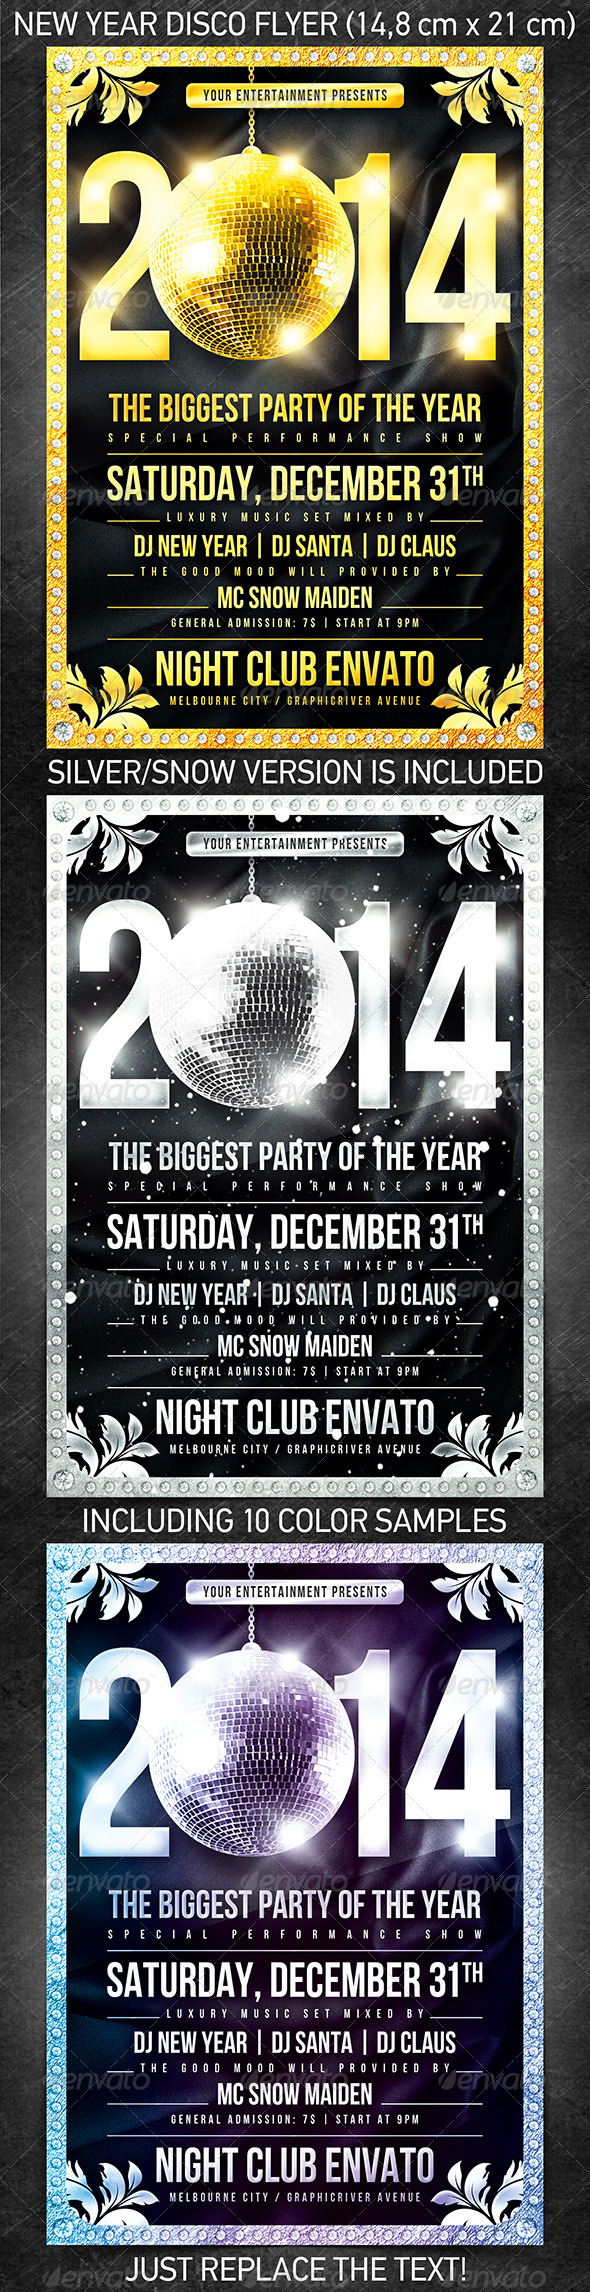 New Year Disco Flyer - Print Templates